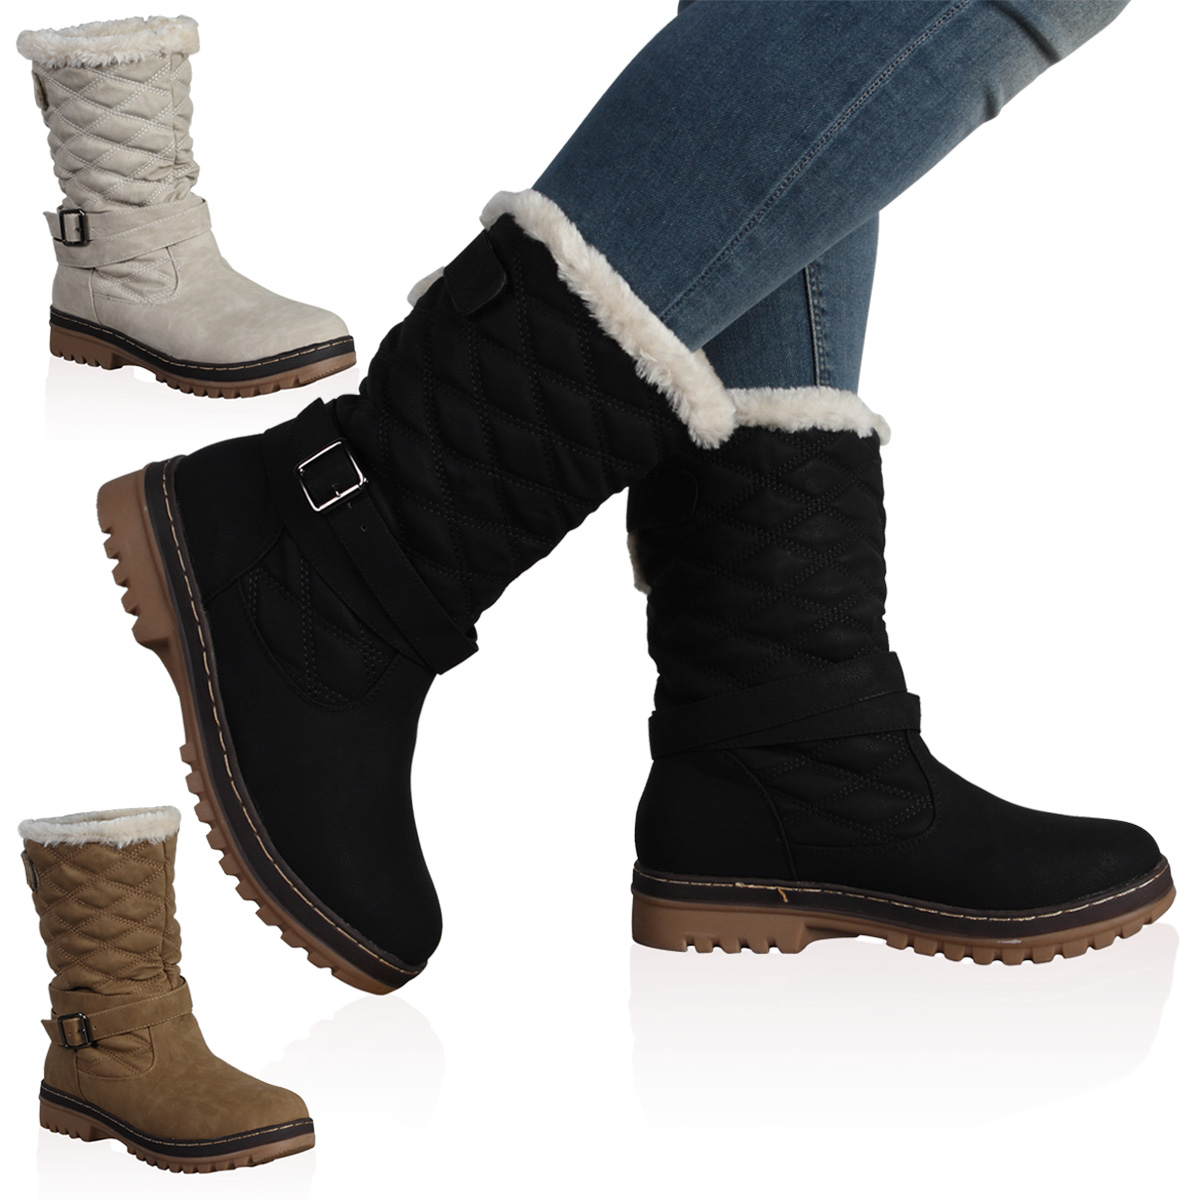 Snow Boots Women's Footwear | Planetary Skin Institute